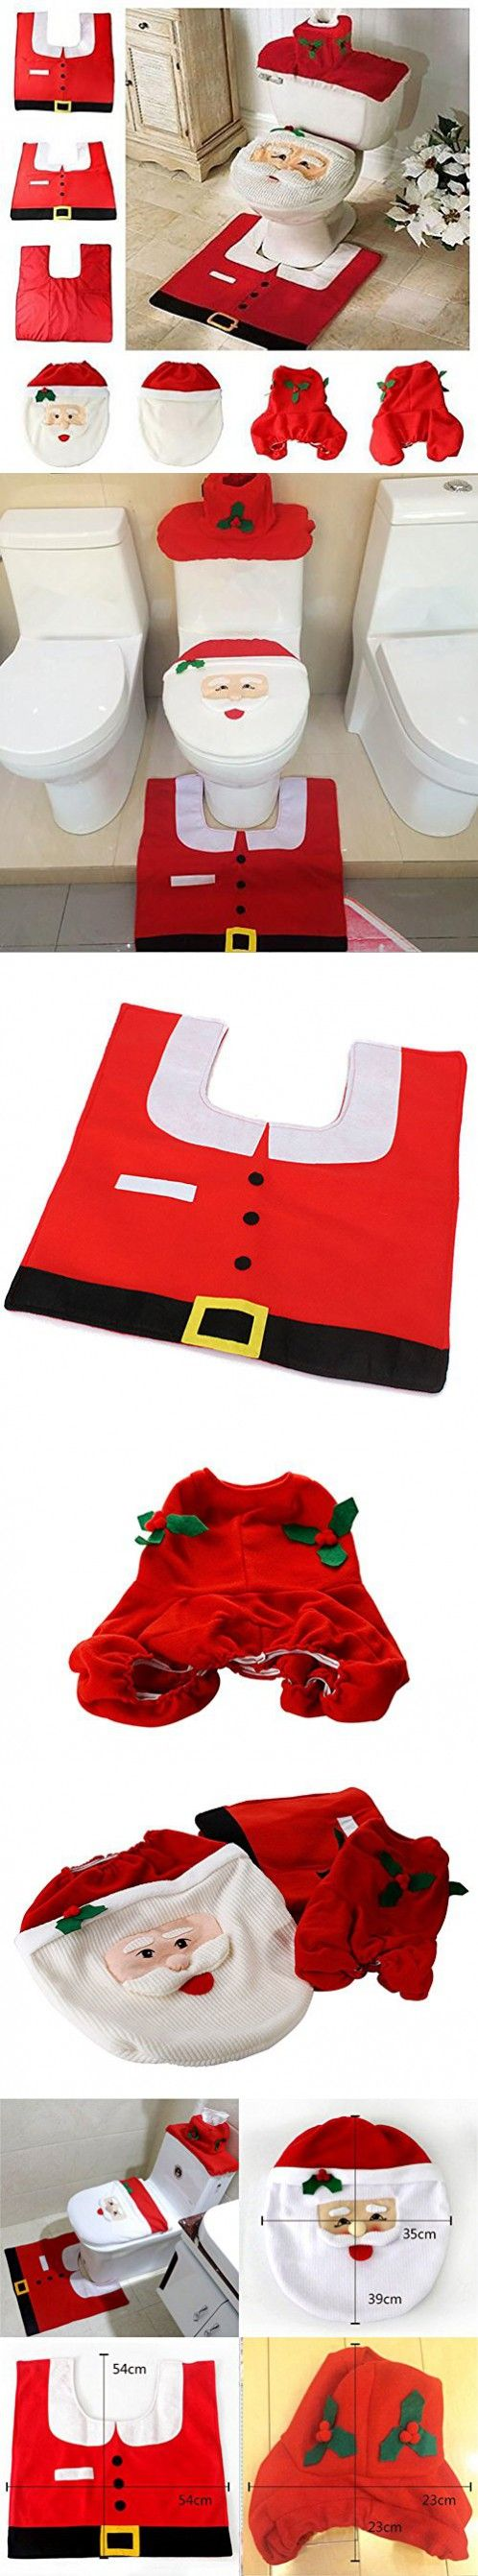 Happy Santa Toilet Seat Cover + Rug + Tank & Tissue Box Cover | Xmas Gift for Bathroom Christmas Decoration Set of 3 (Red)